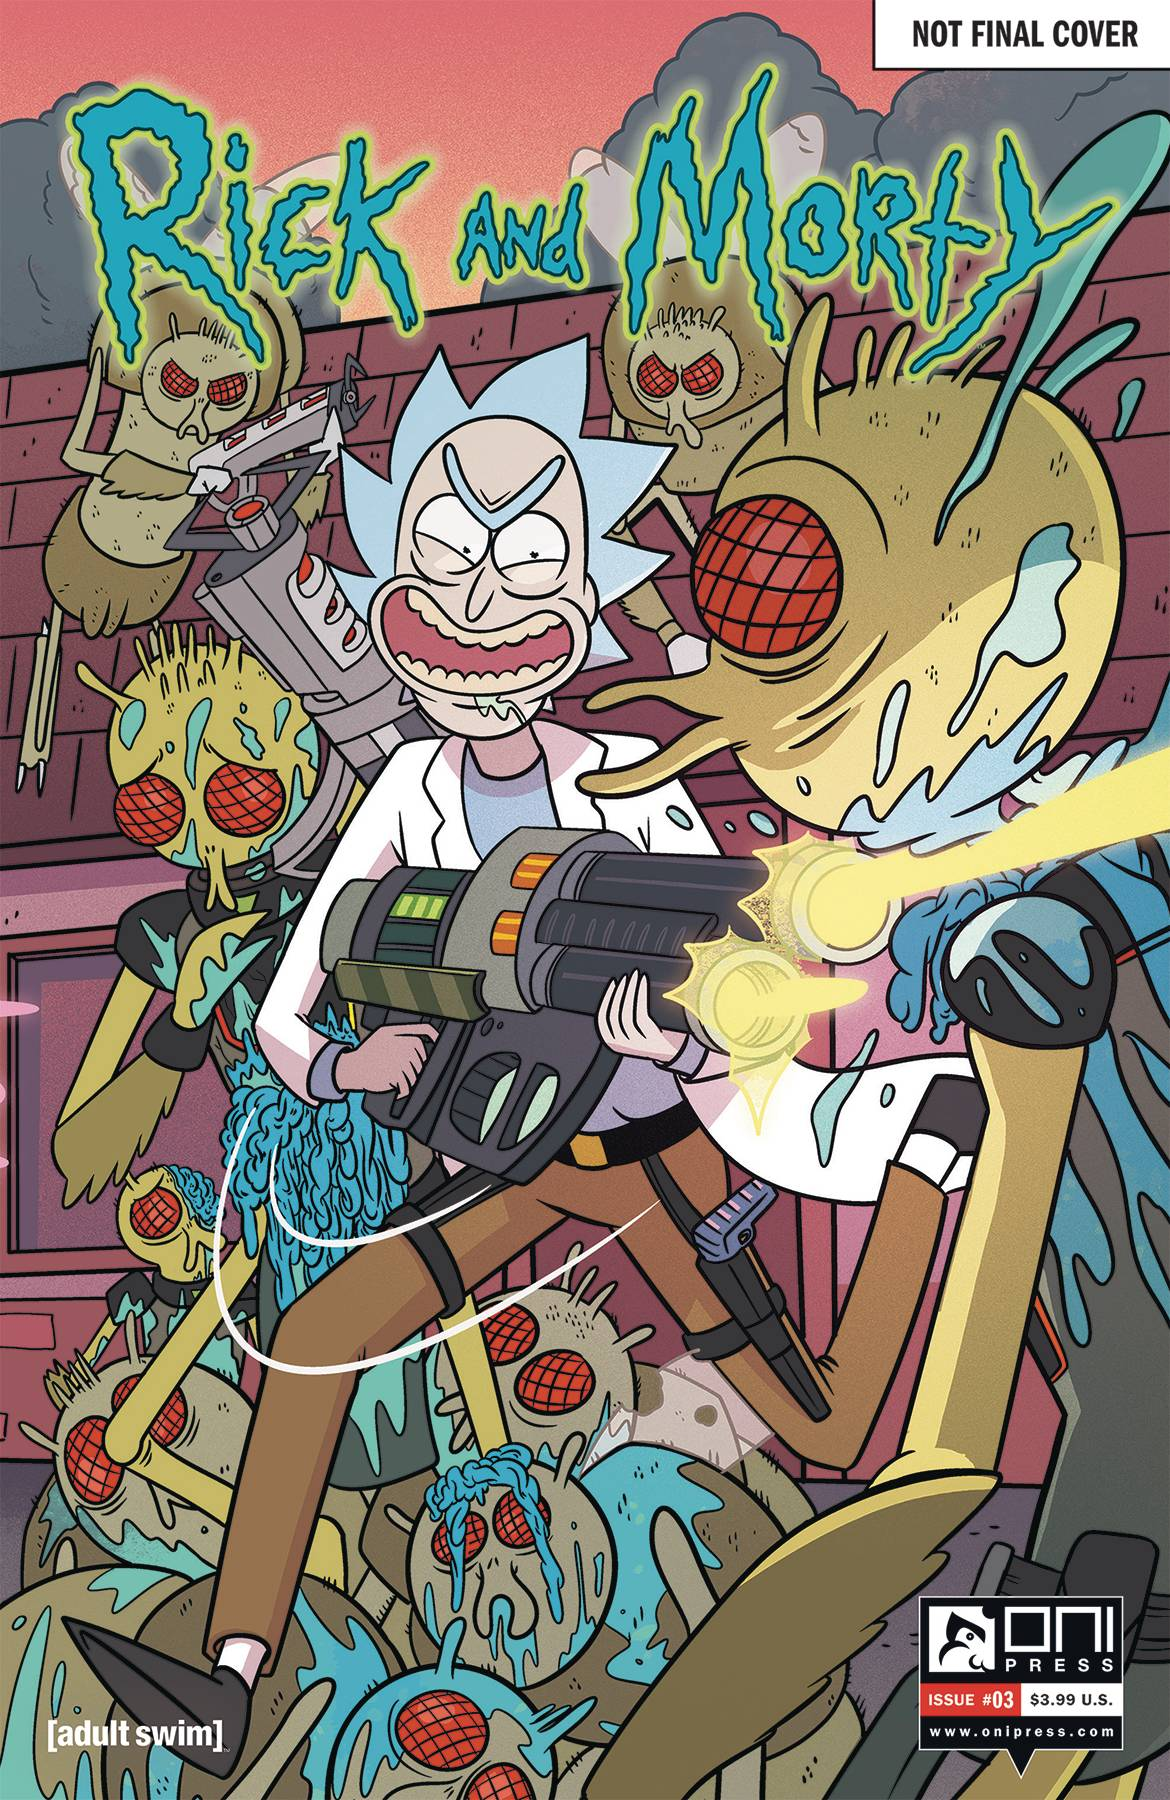 RICK & MORTY 3 50 ISSUES SPECIAL VAR.jpg